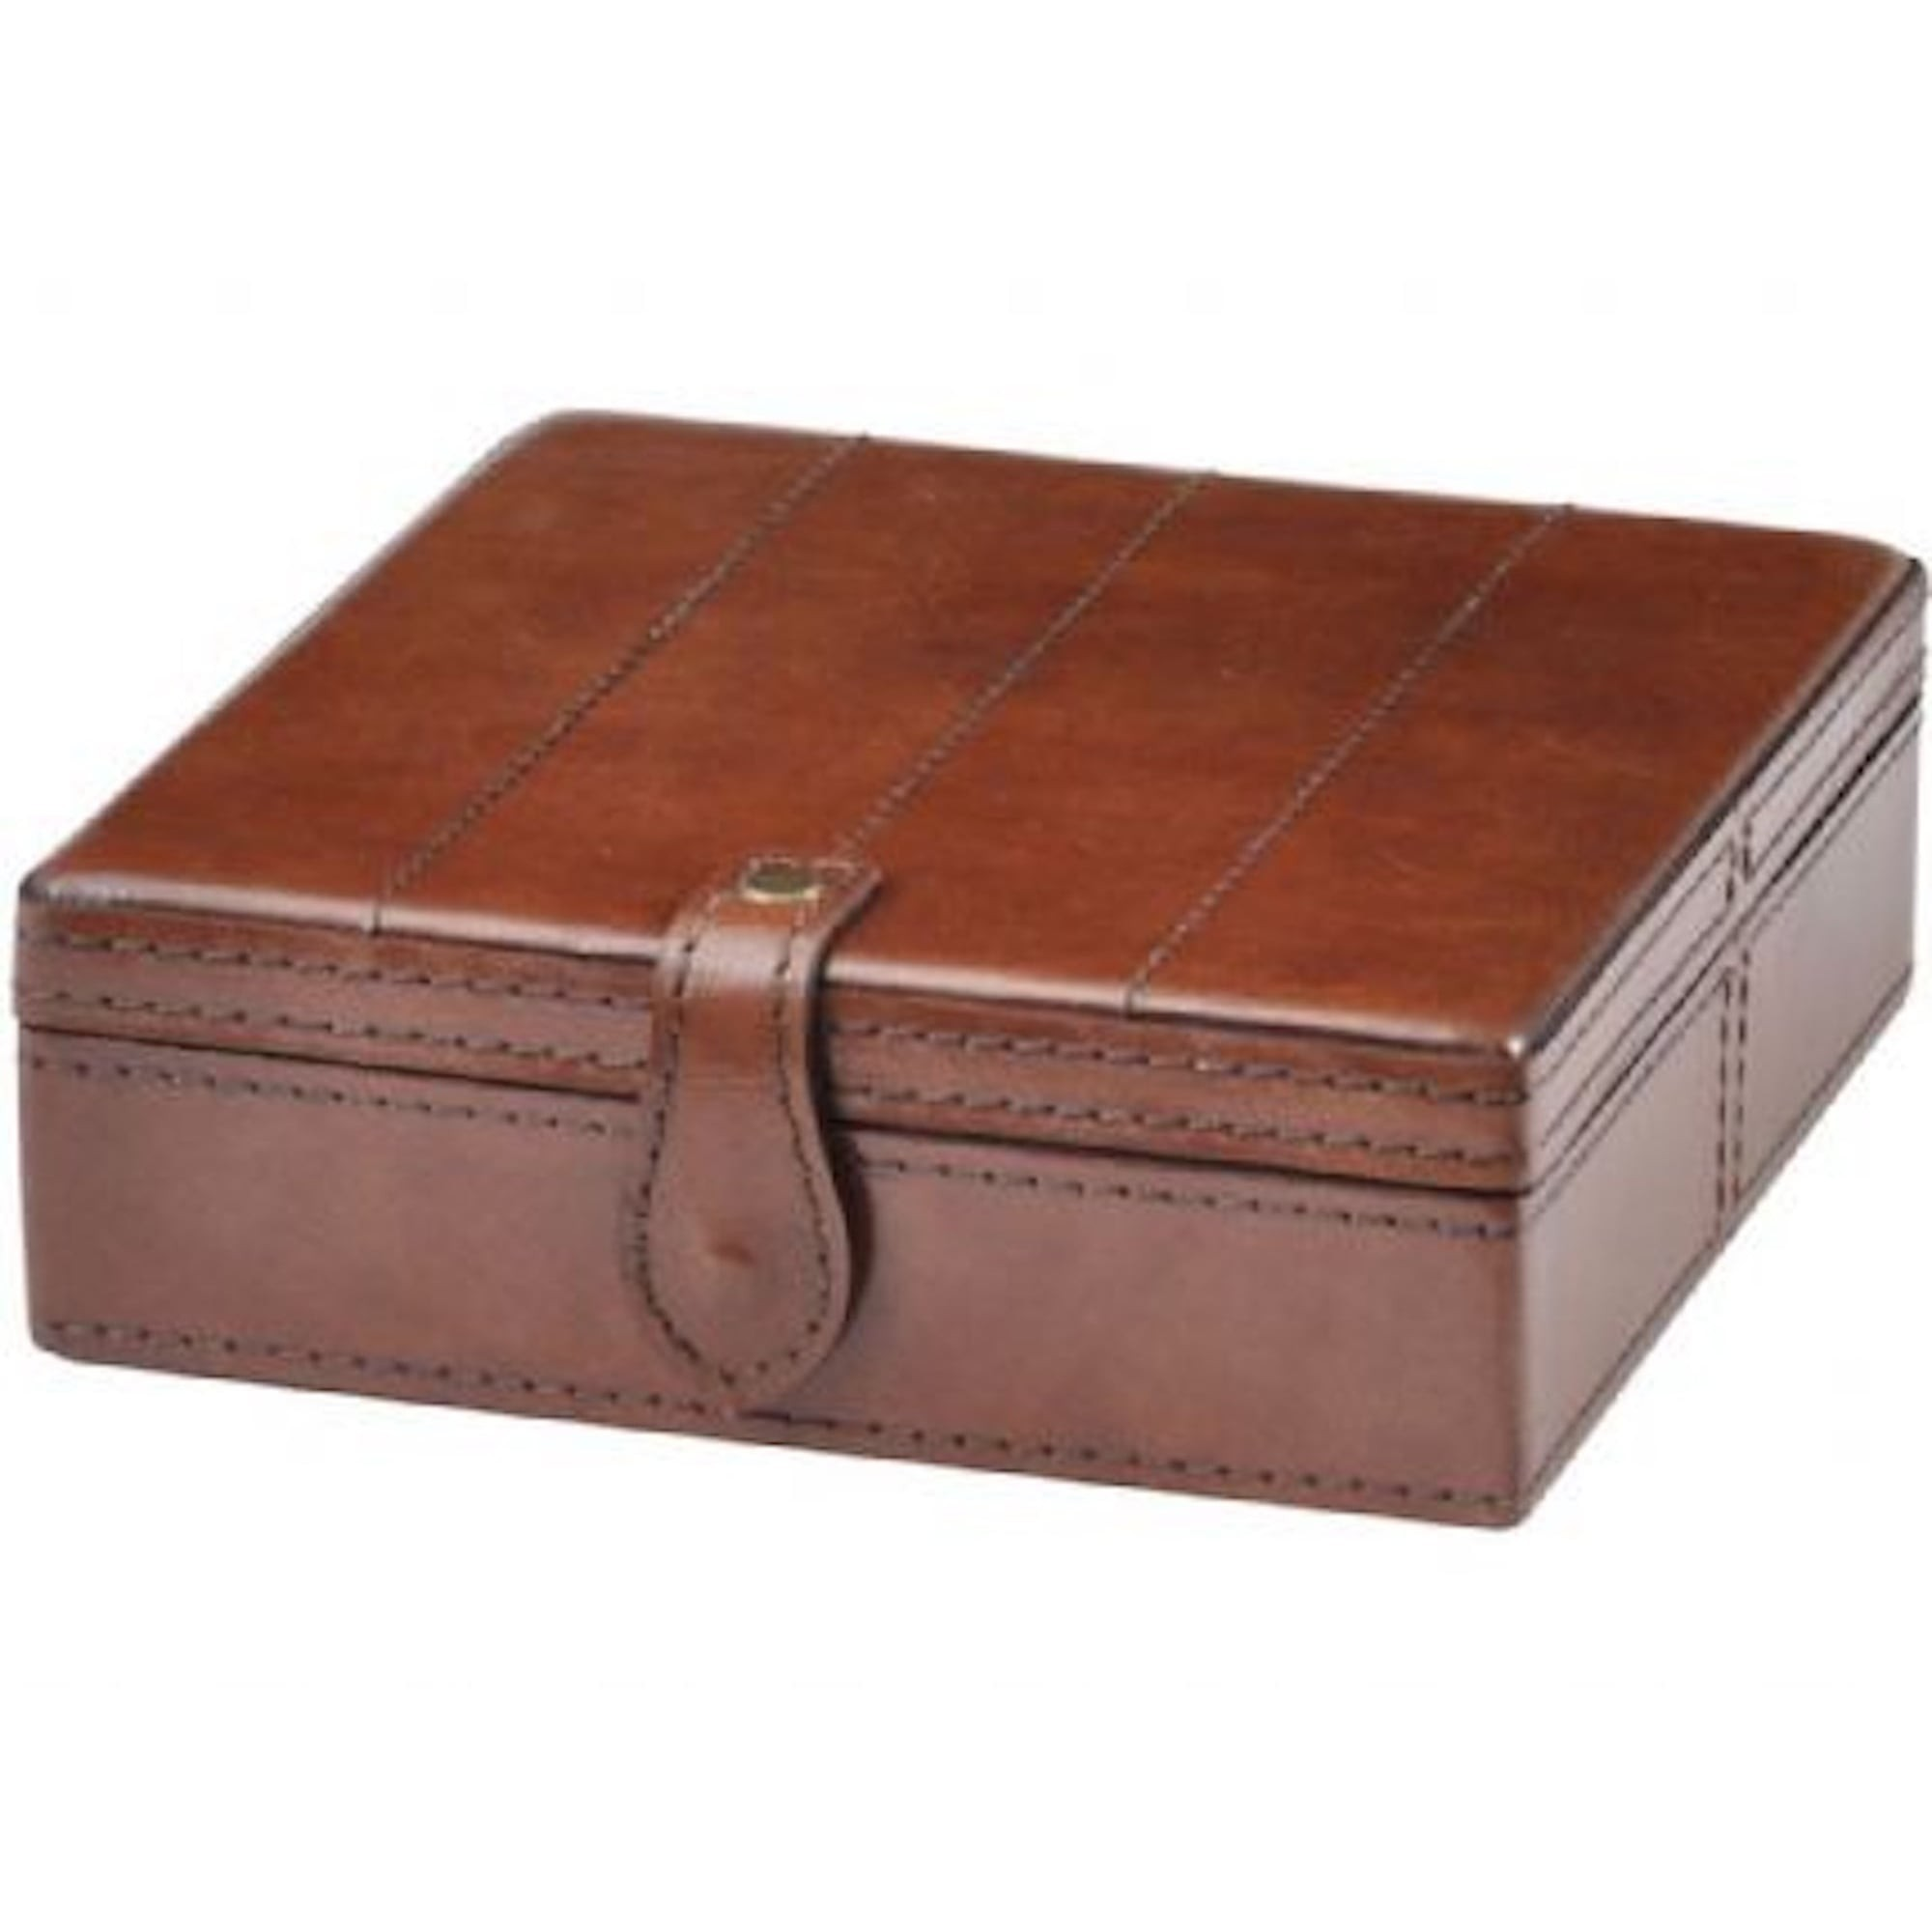 Maroon leather jewellery Box